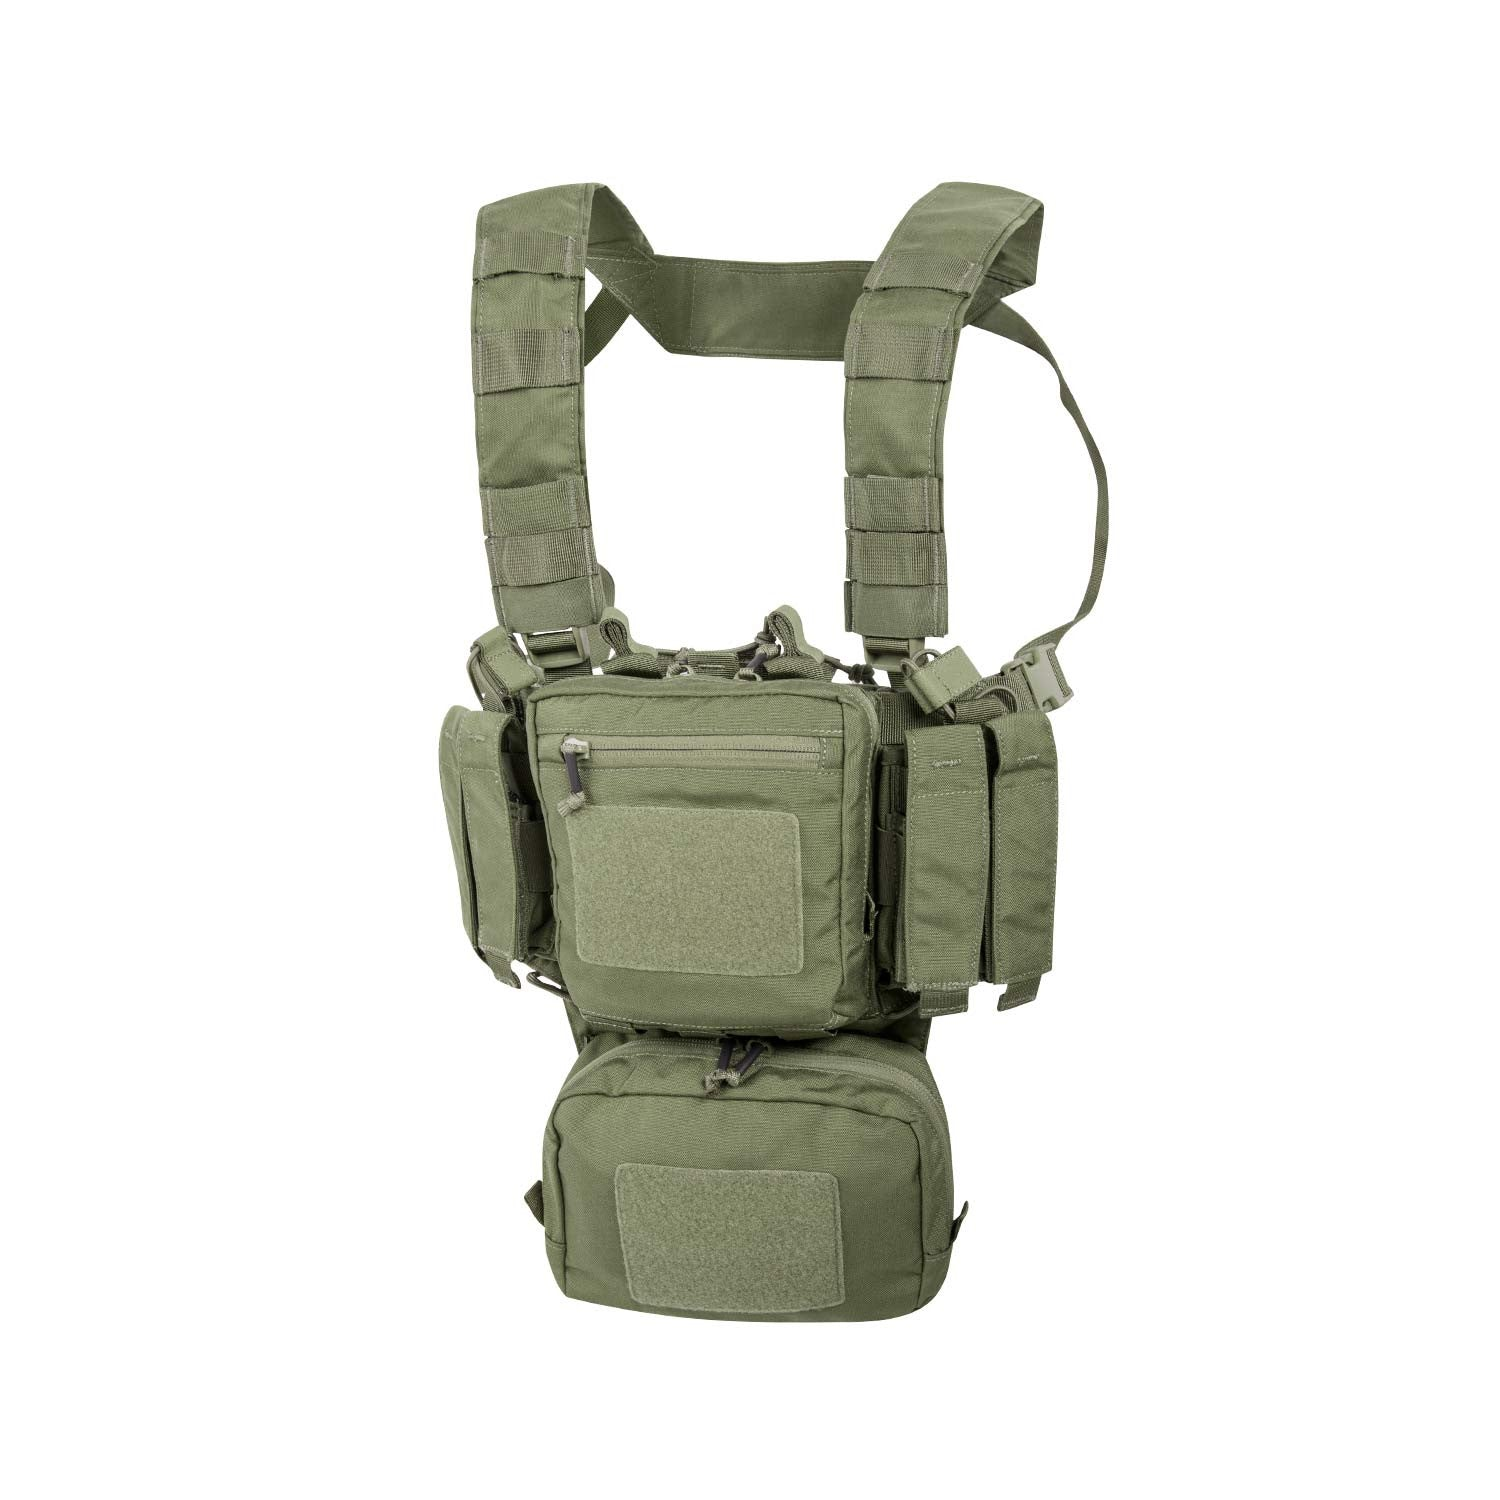 TRAINING MINI RIG (TMR) - OLIVE GREEN